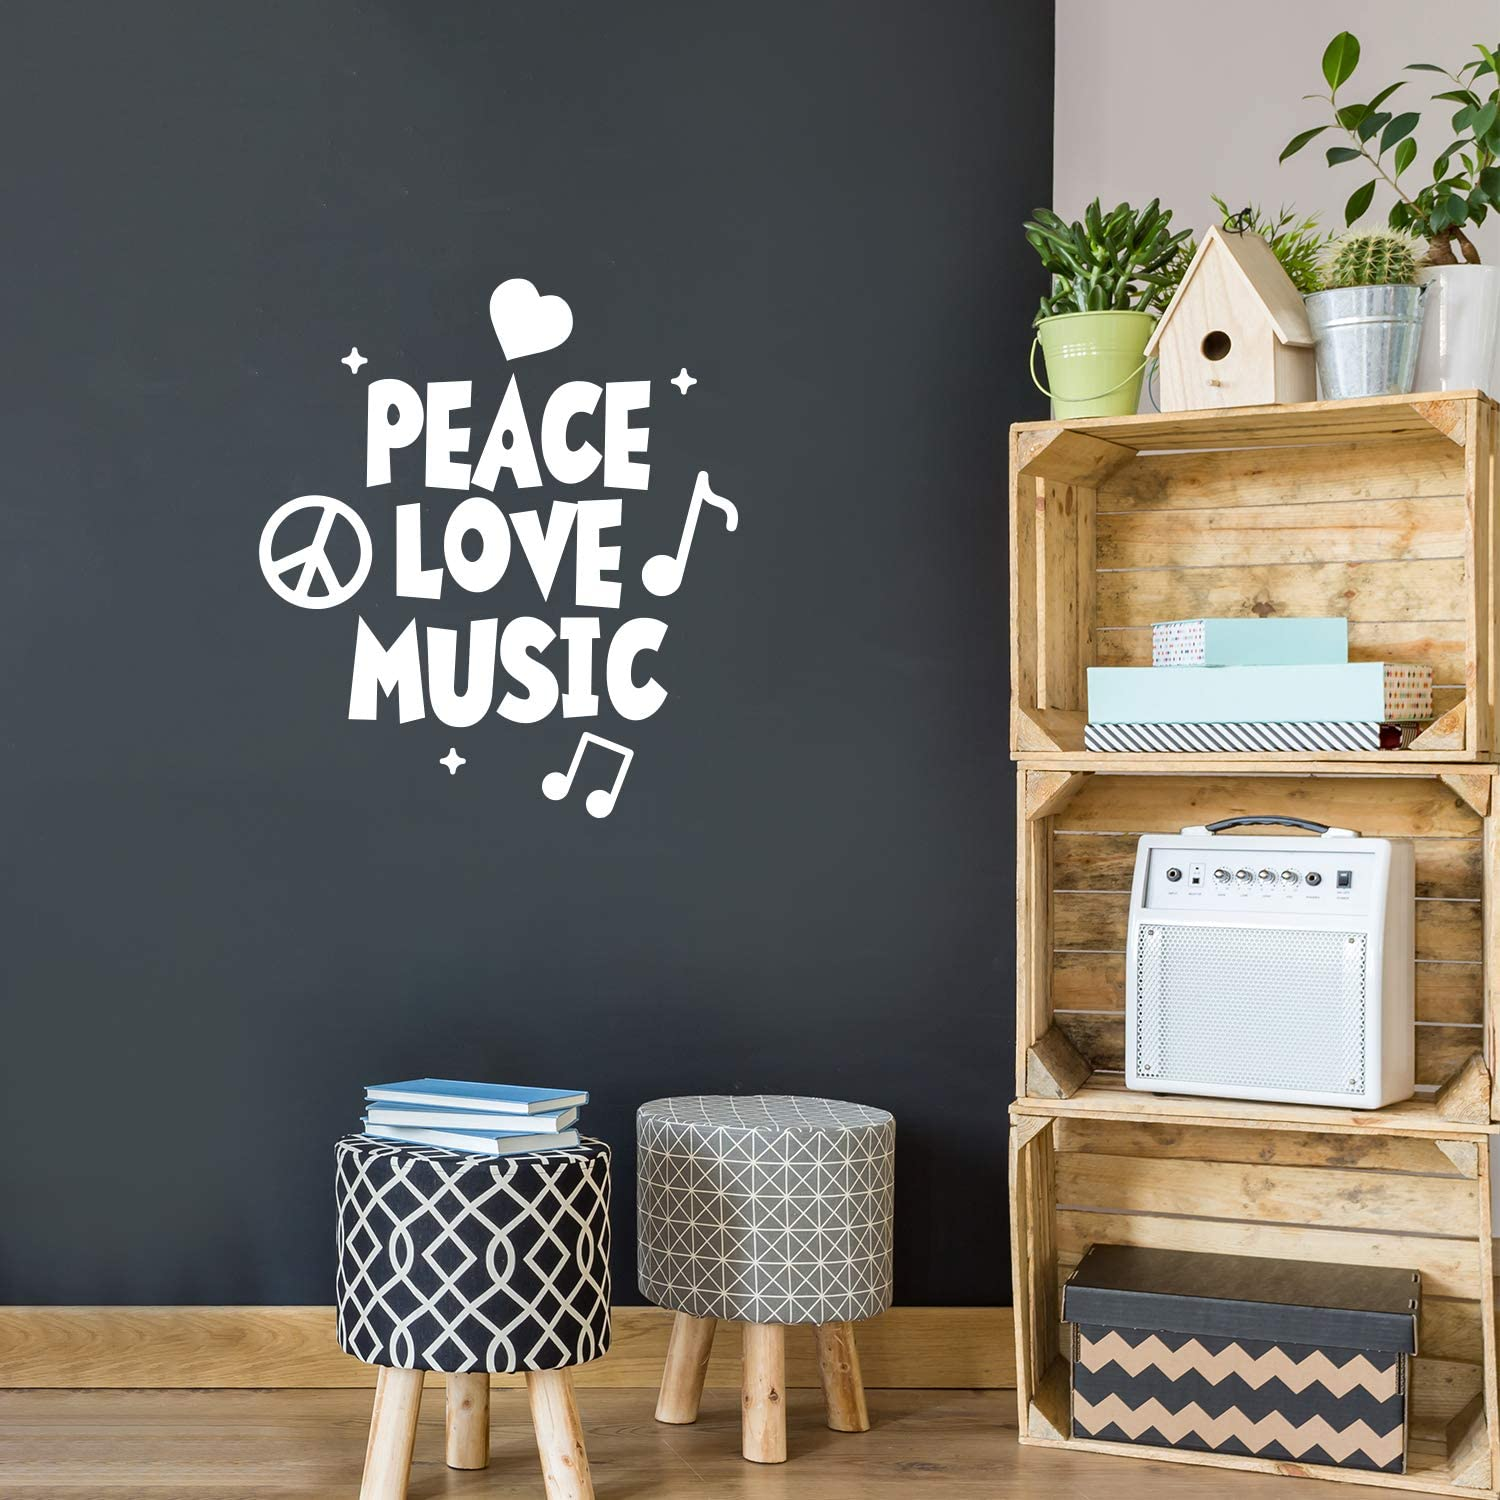 """Vinyl Wall Art Decal - Peace Love Music - 26"""" x 23"""" - Modern Urban Music Lover Quote for Home Living Room Bedroom Sticker - Trendy Good Vibes for Office Business Workplace Decor (26"""" x 23"""", White)"""